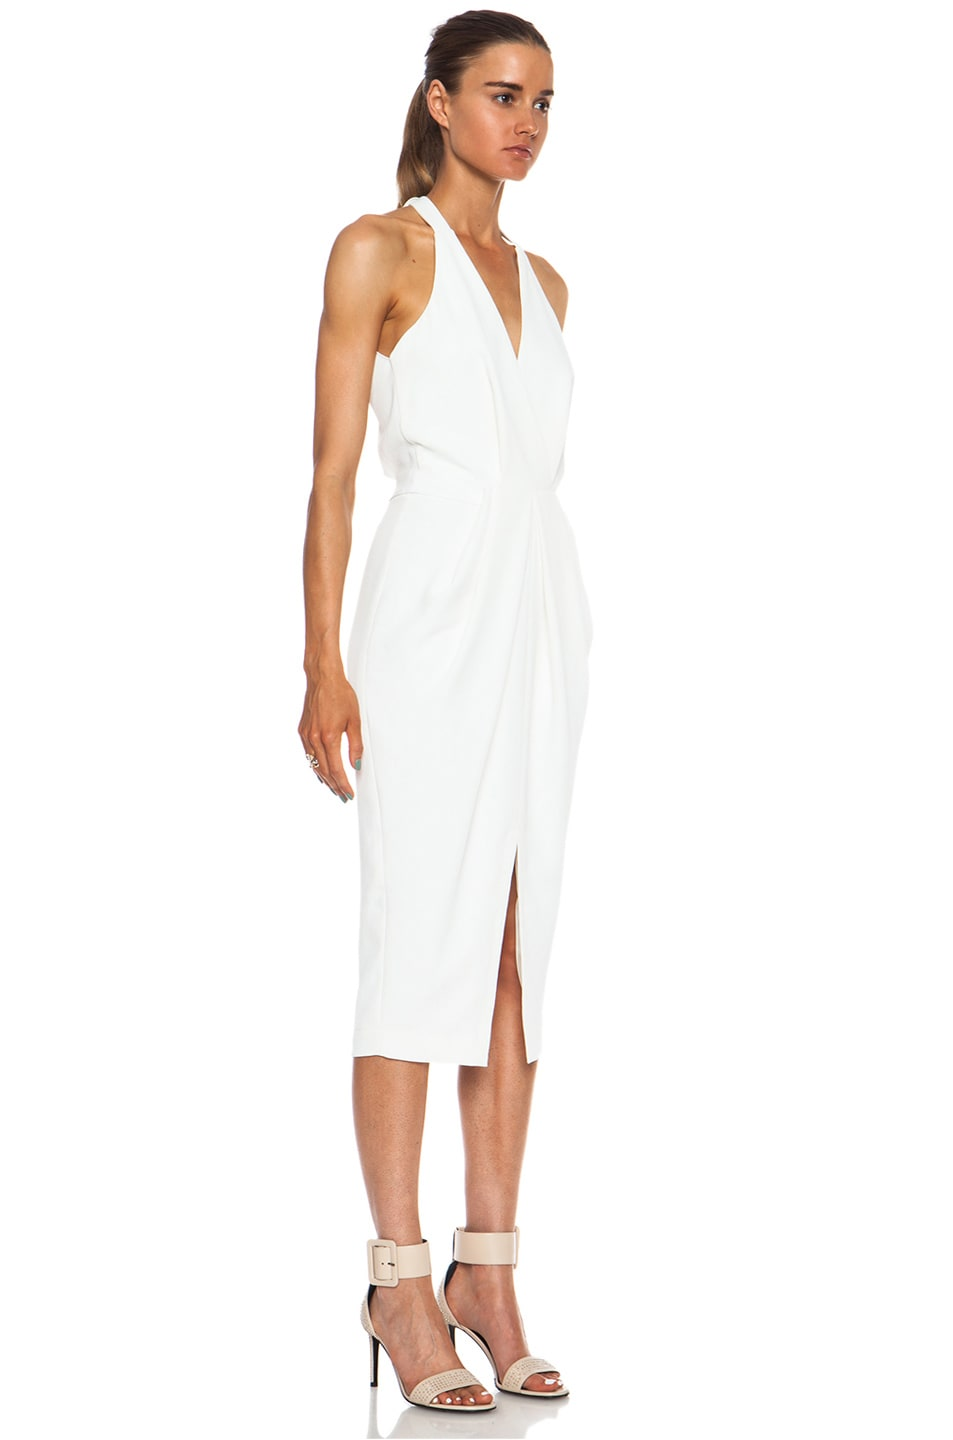 whitewash drape dress Dion Lee hUEsM4Ae